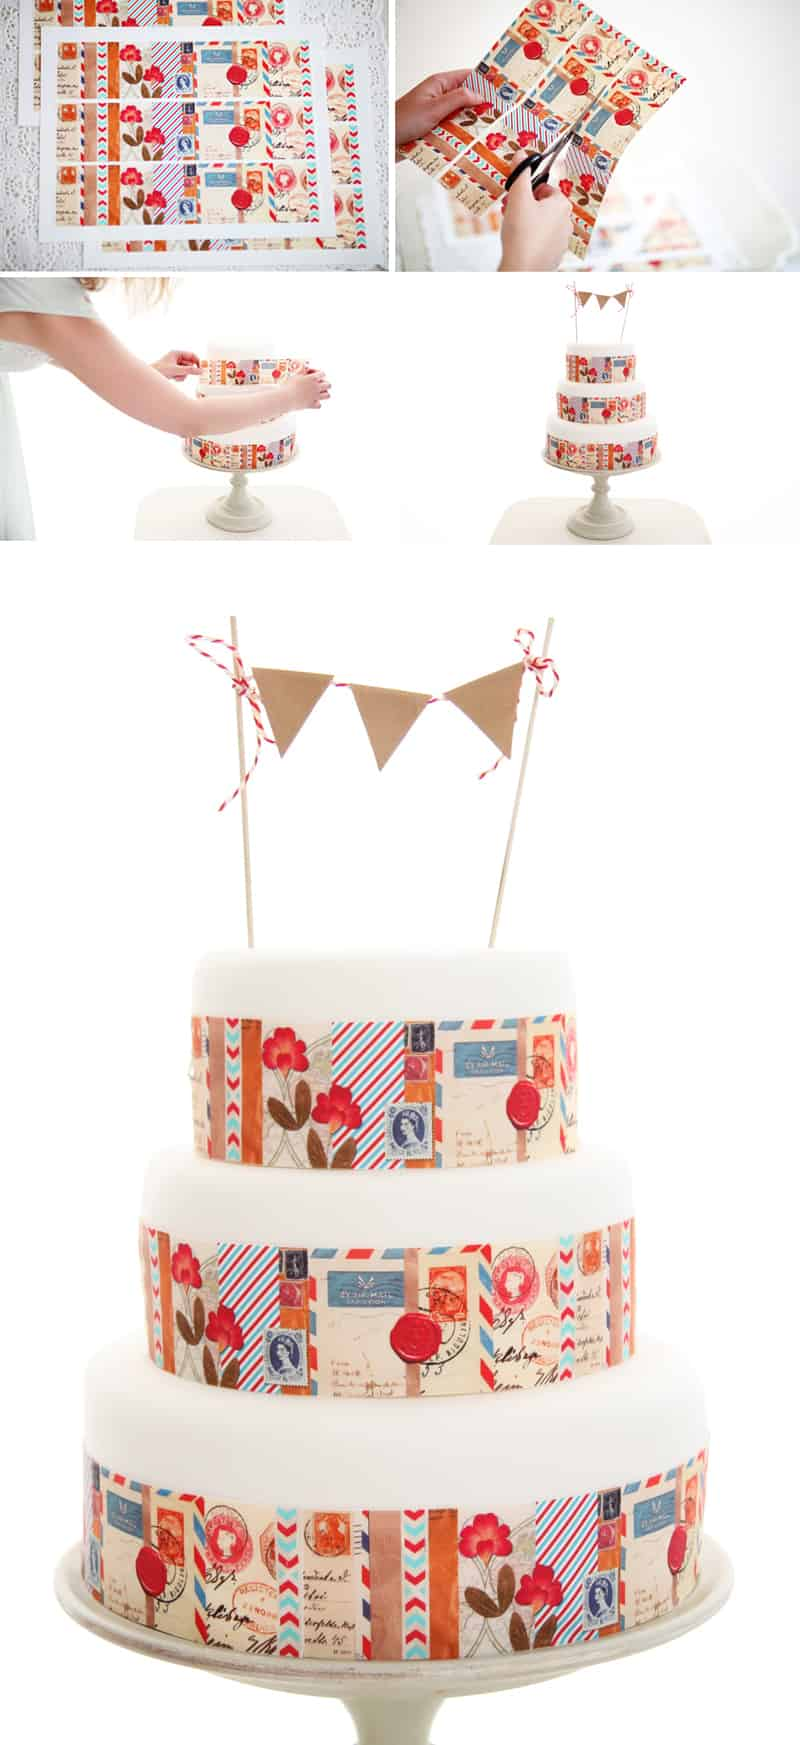 Edible Cake Icing DIY Collage